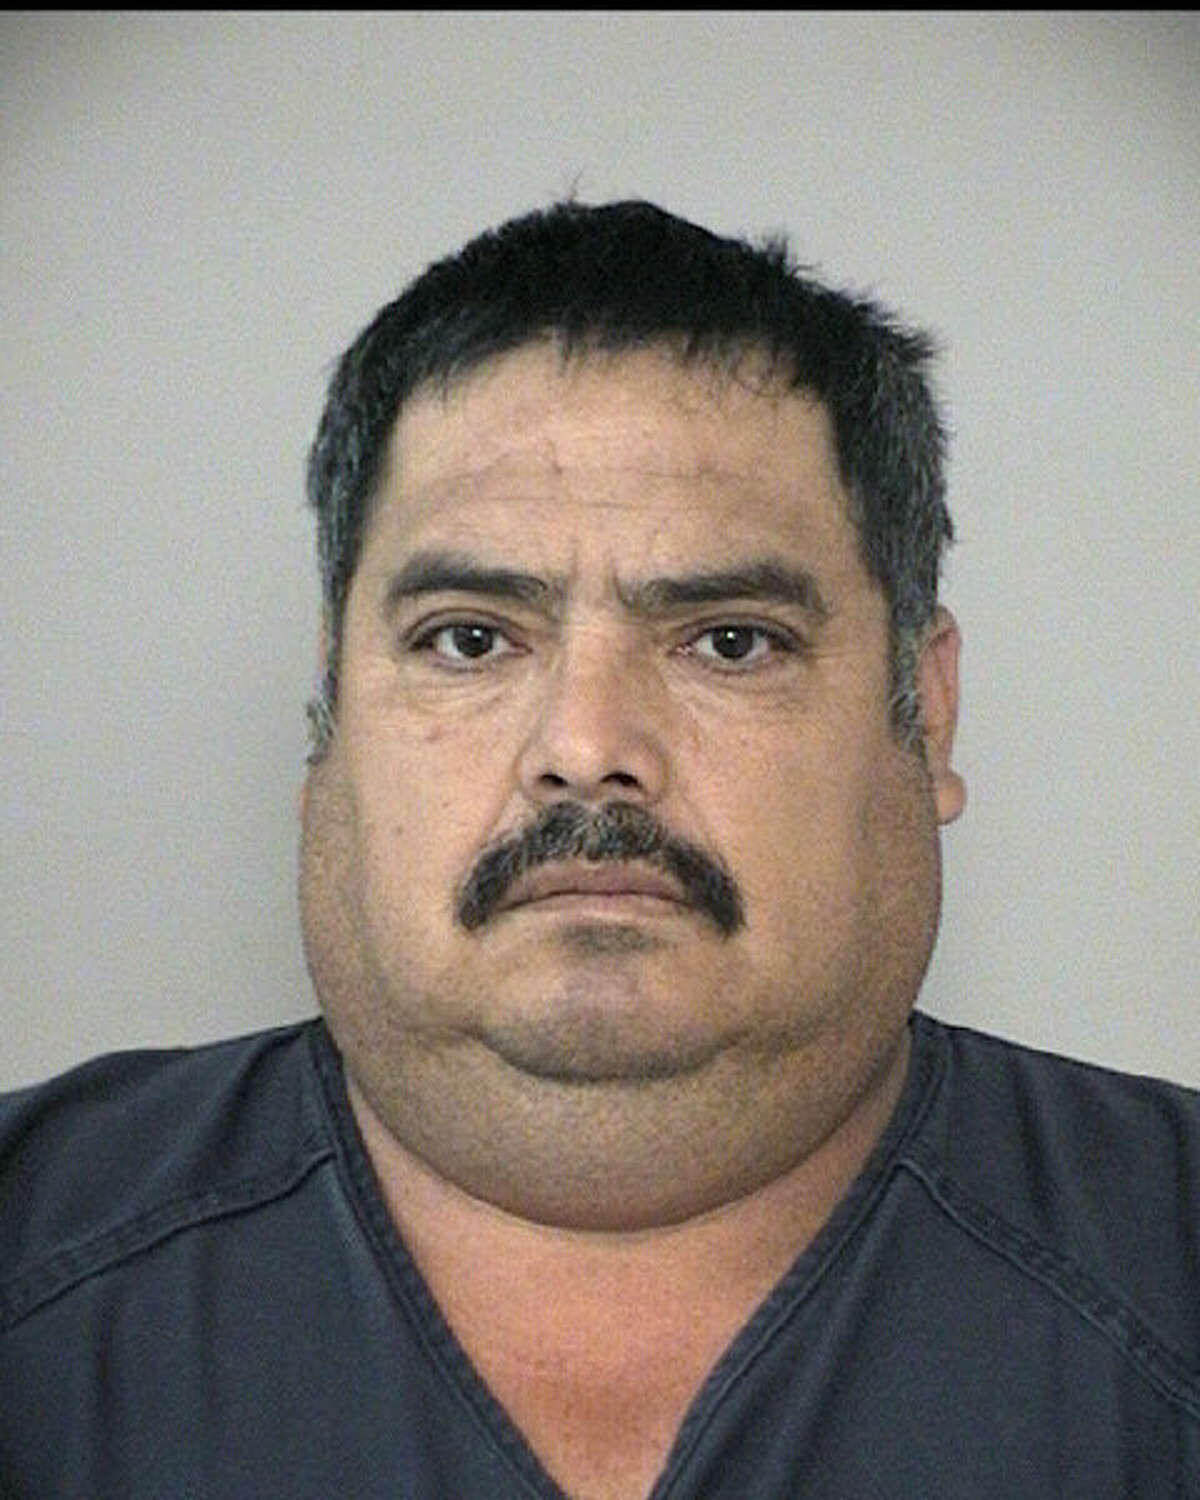 Pedro Martinez was charged with manufacture/delivery of a controlled substance after he allegedly tried to sell almost 60 pounds of methamphetamine in Katy on April 11, 2018.